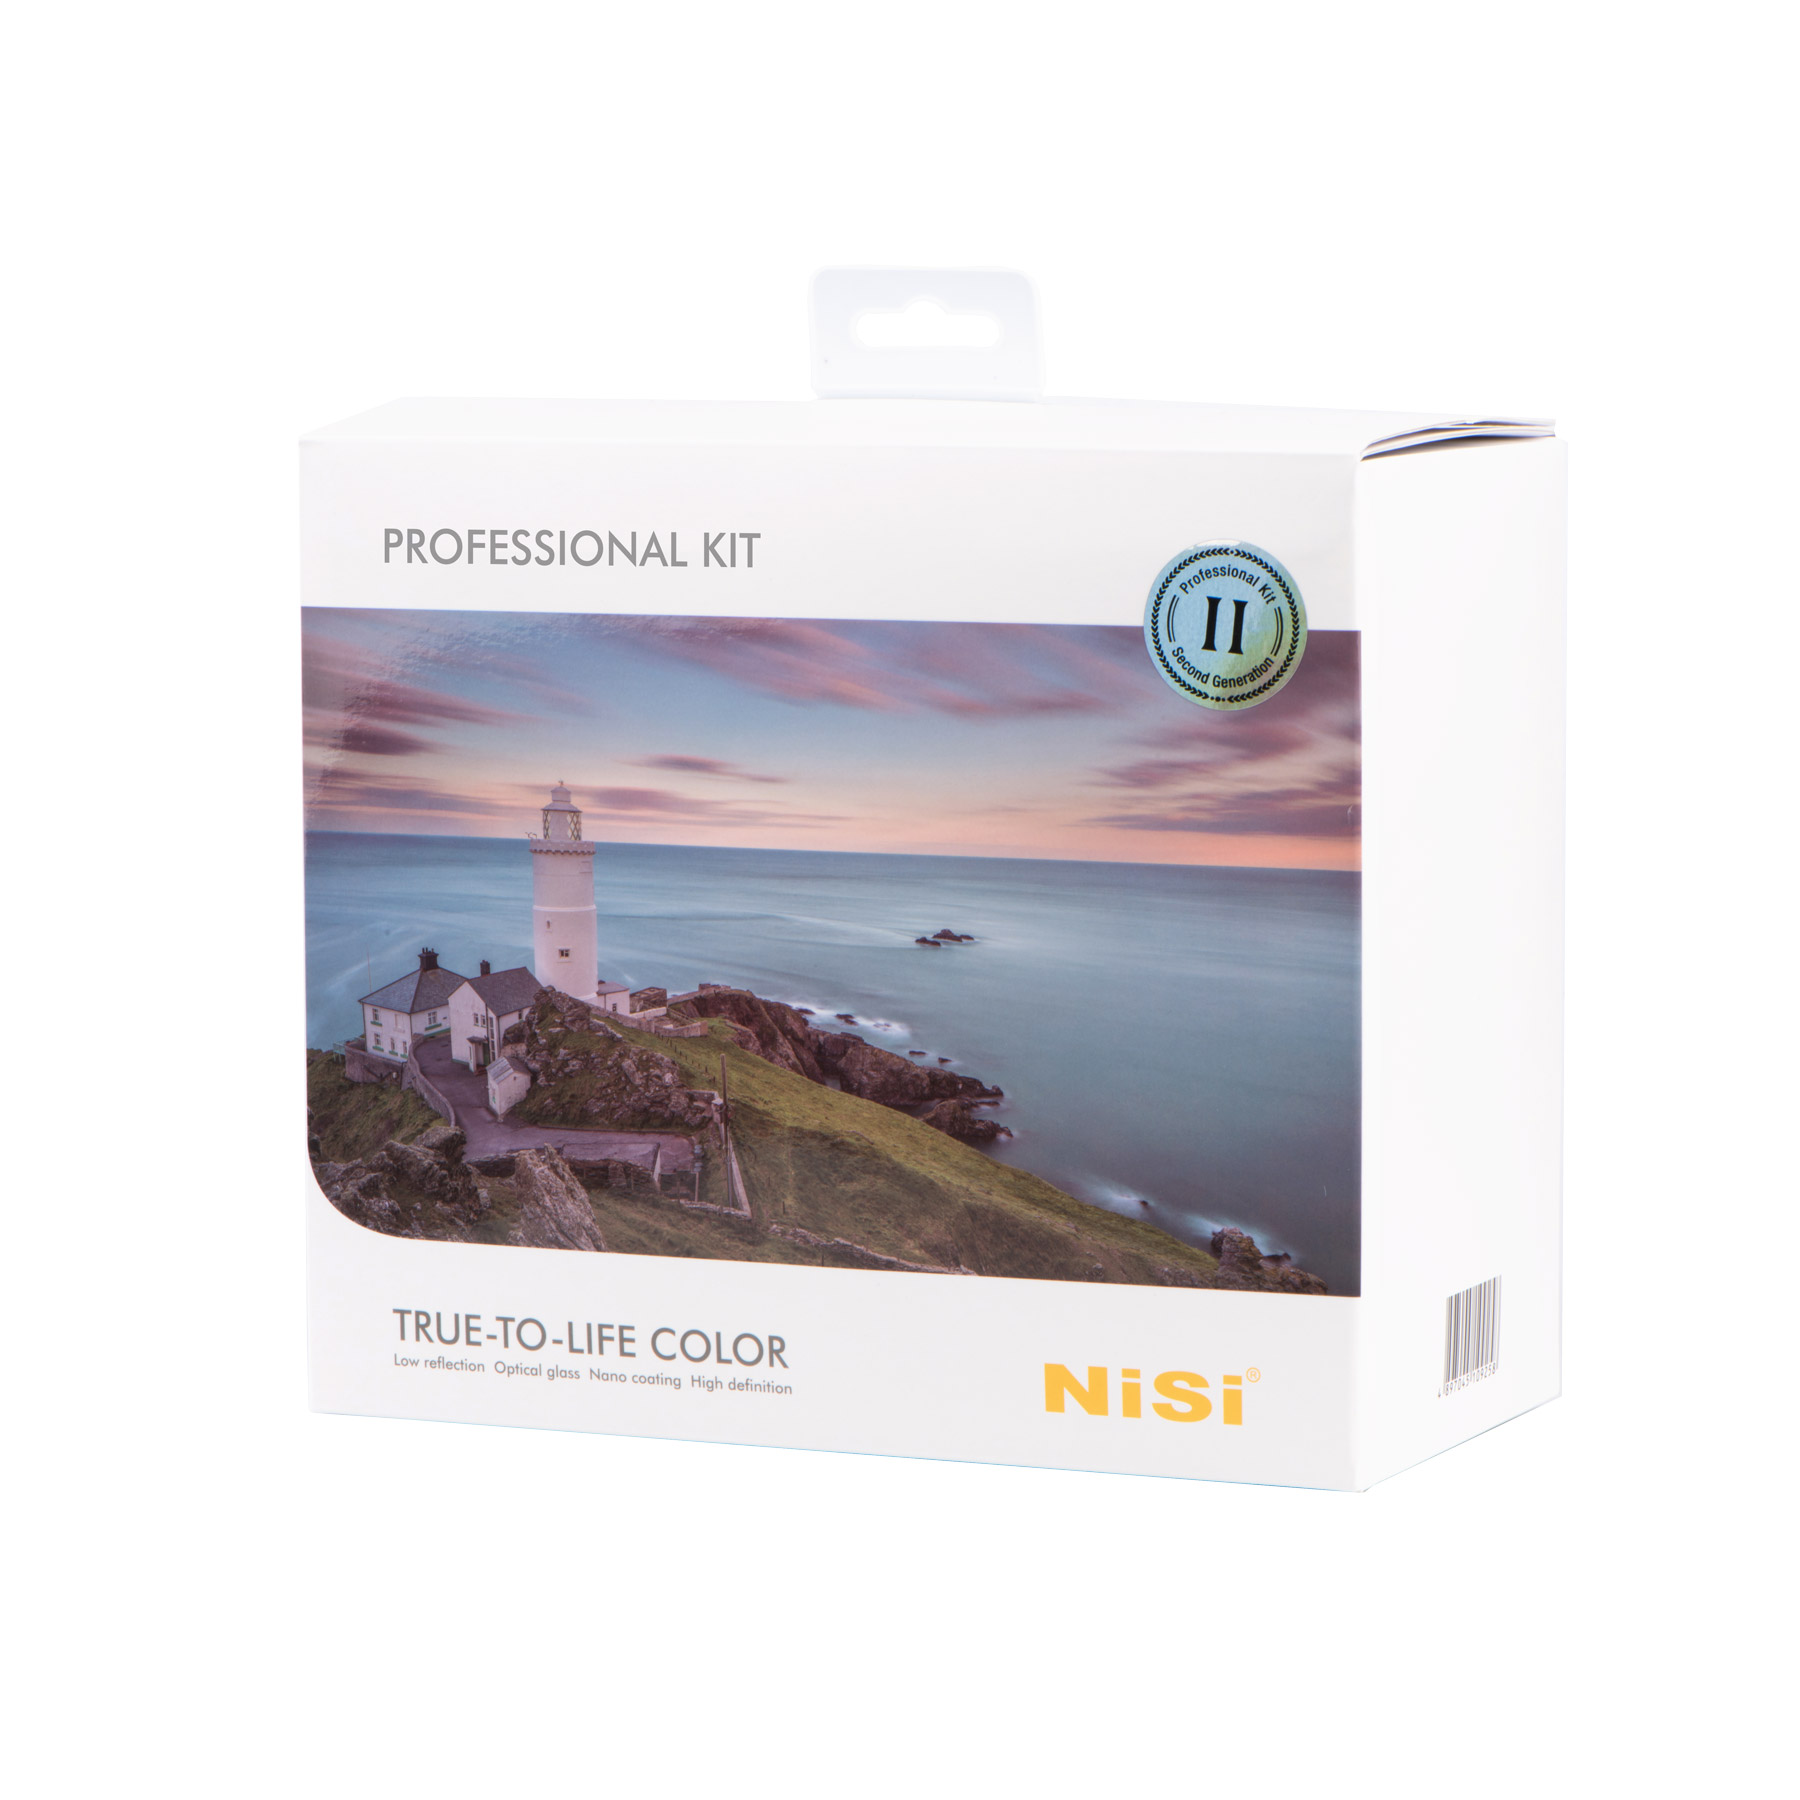 NiSi Filters 100mm Professional Kit Second Generation II